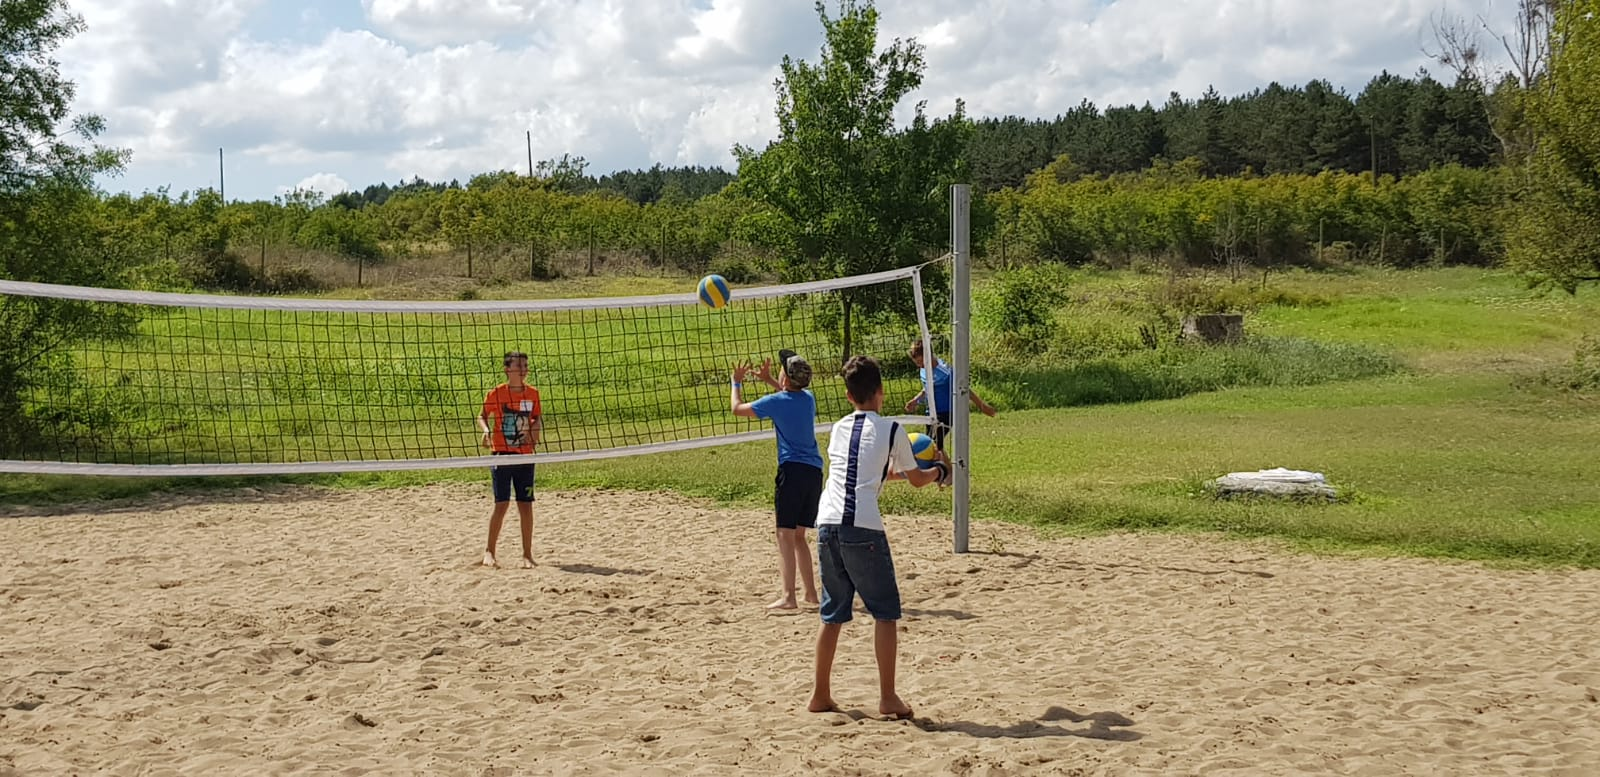 language vacations for kids at Bulgarian seaside Z camp, Day 27 - volleyball court - three guys play